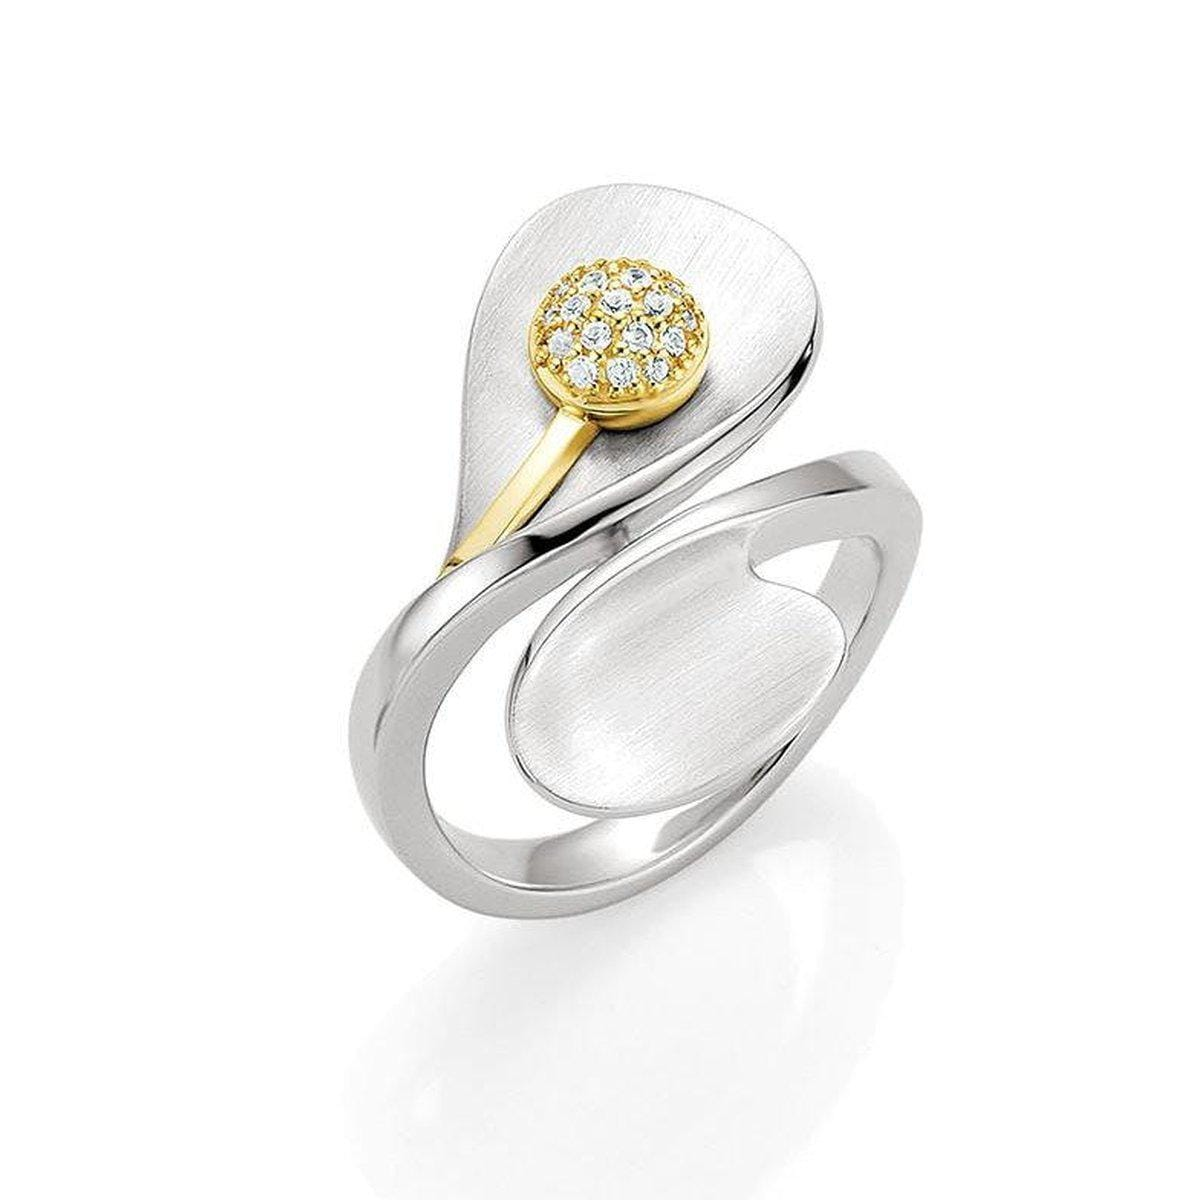 Yellow Gold & Rhodium Plated Sterling Silver White Sapphire Ring - 42/03222-Breuning-Renee Taylor Gallery